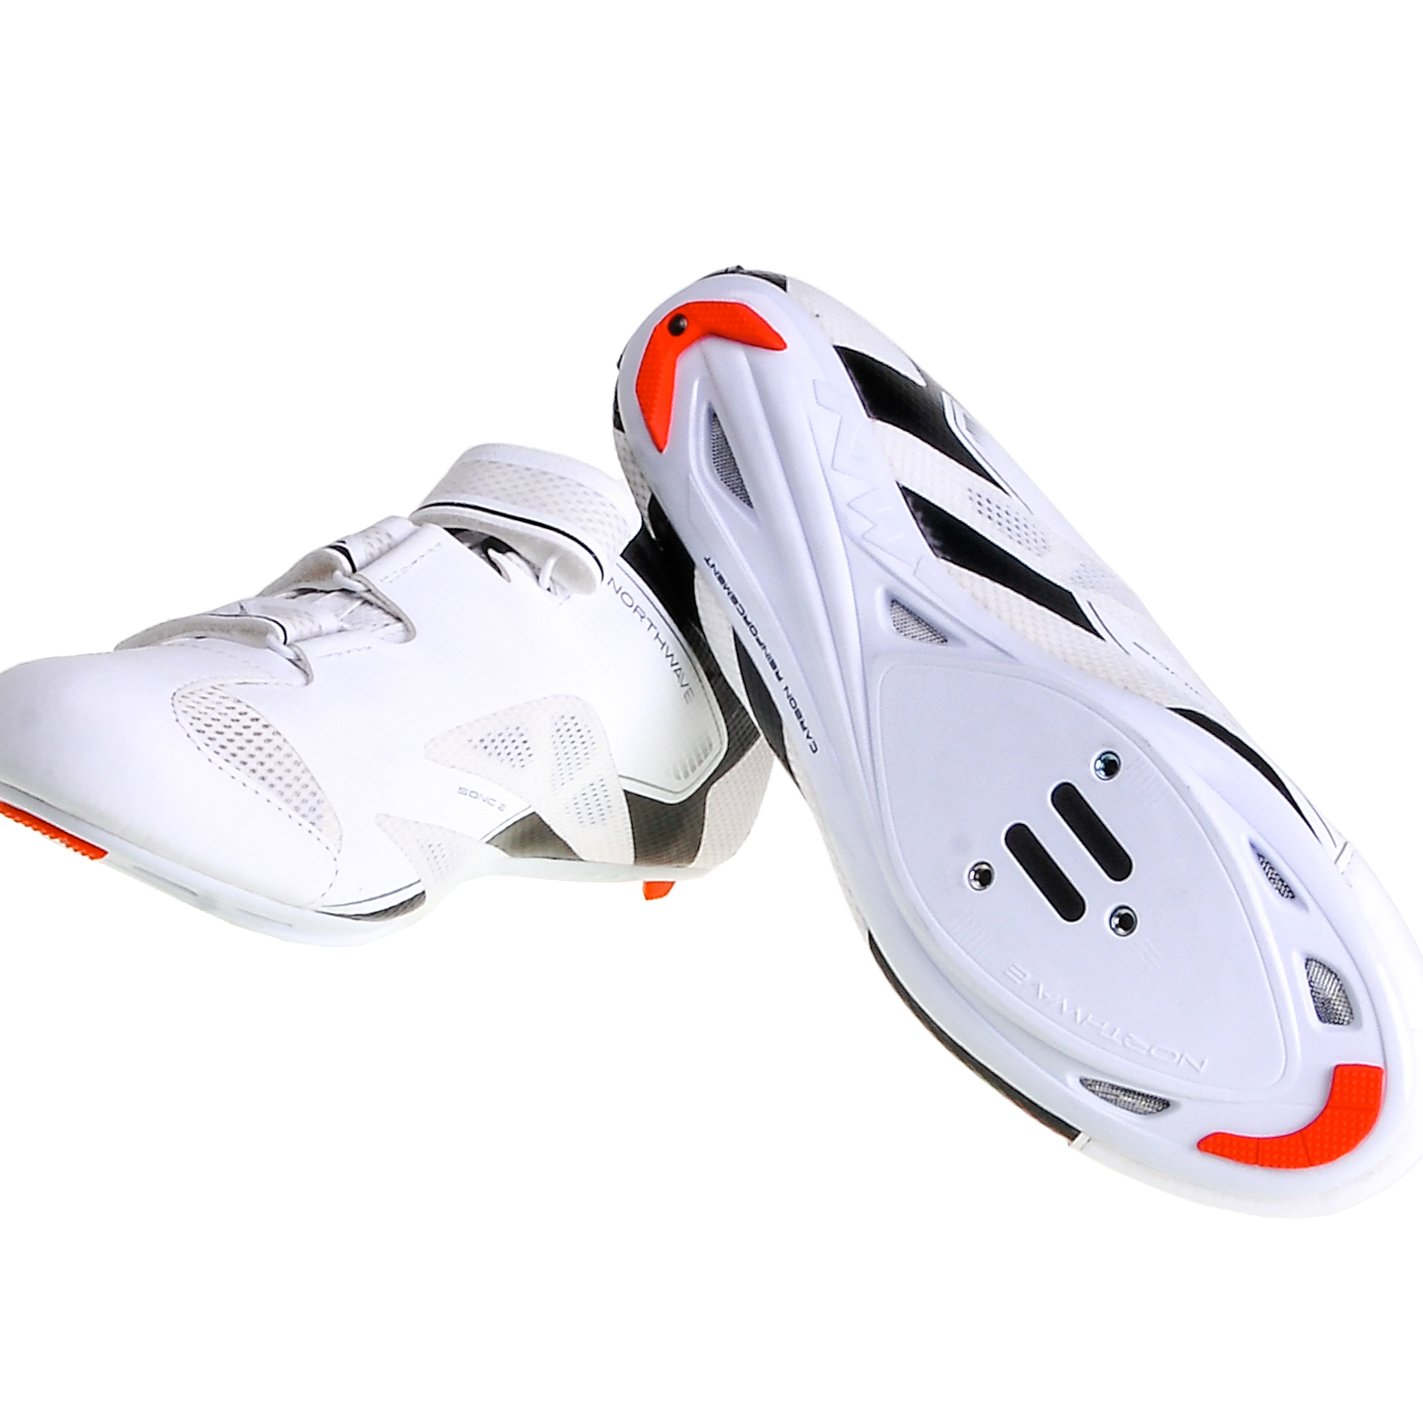 Northwave Sonic 2 Cycling Shoe 2016 (White/Black, 42)